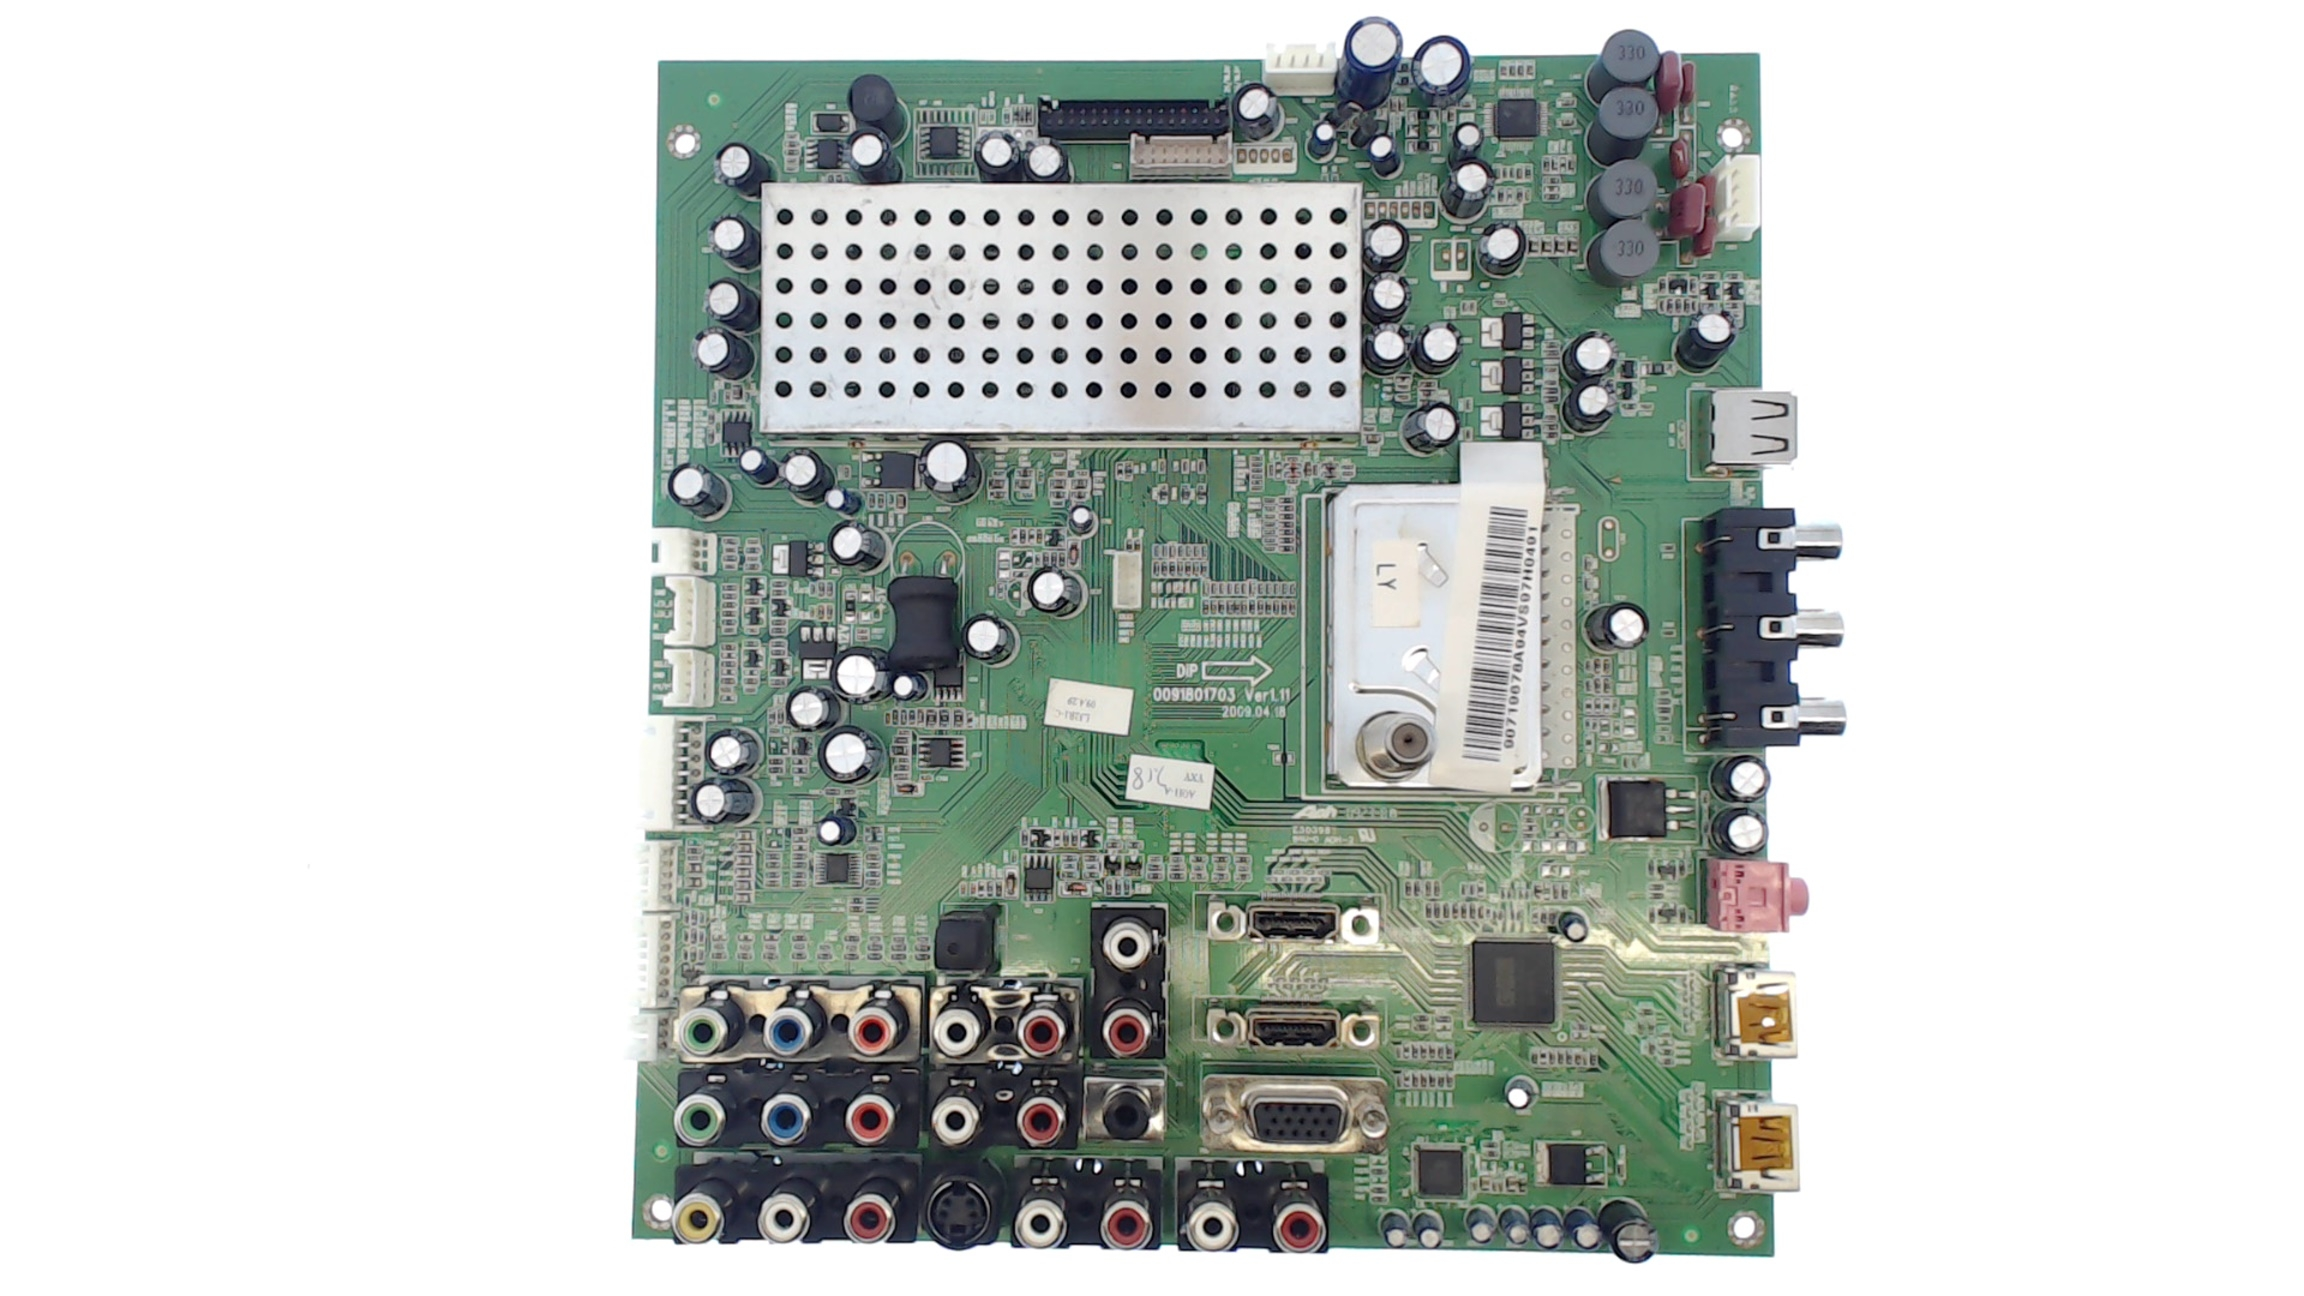 Haier TV Model HLC32R1 Main Audio video Board Part Number 0091801703